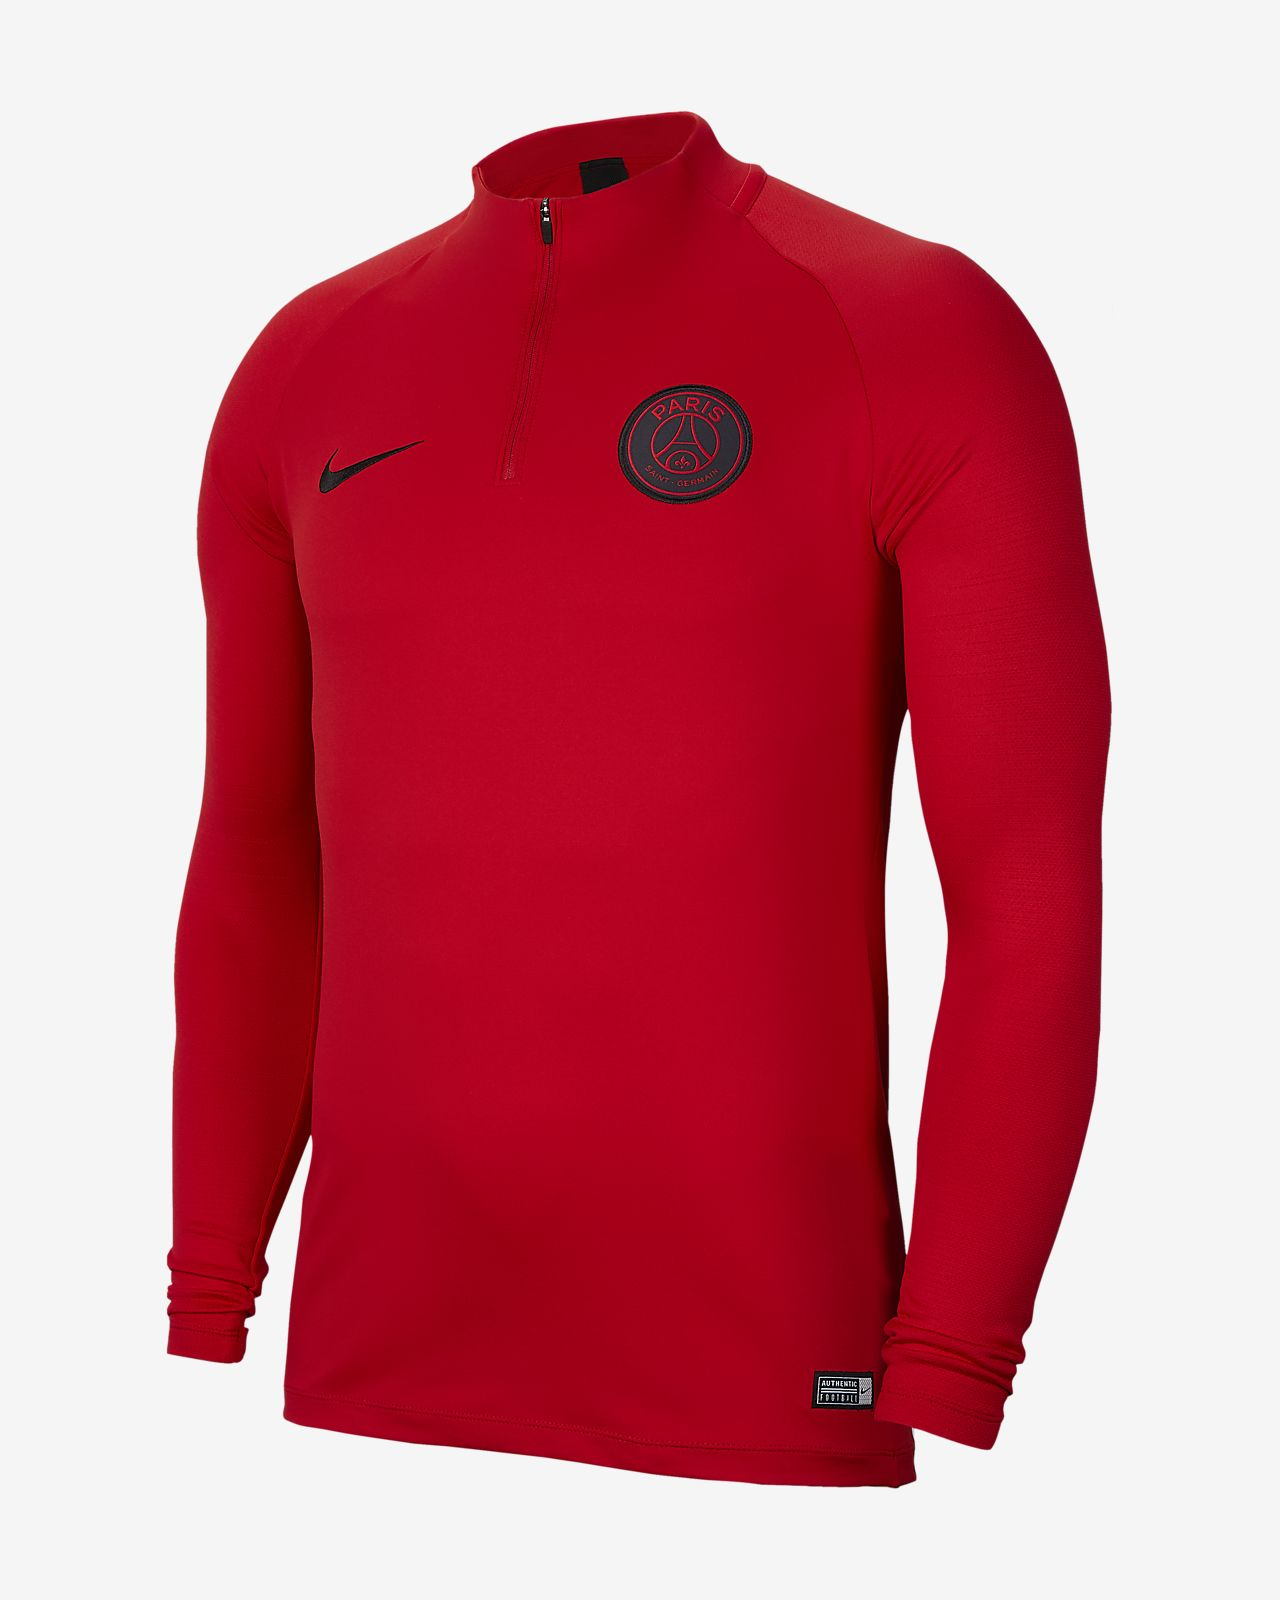 Nike Dri-FIT Paris Saint-Germain Strike Men's Football Drill Top